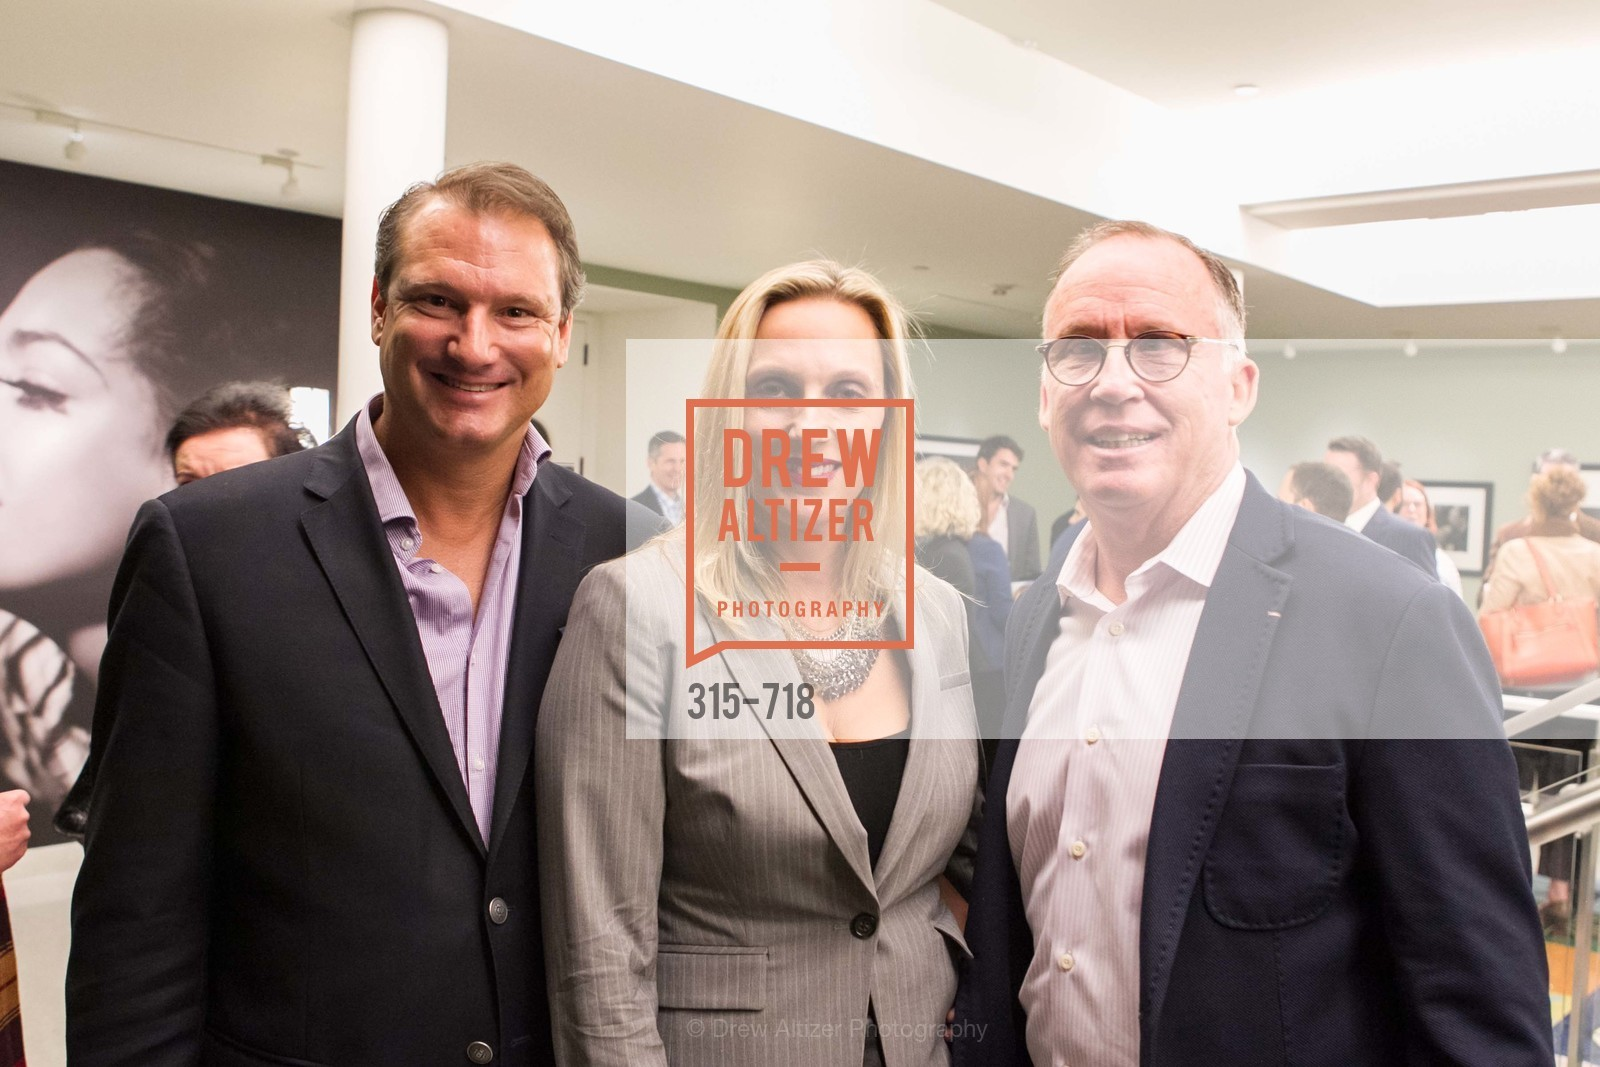 Joseph Lucier, Stacy Caen, DJ Grubb, ICAA Hosts NICKY HASLAM'S Lecture and Book Signing, US, May 12th, 2015,Drew Altizer, Drew Altizer Photography, full-service agency, private events, San Francisco photographer, photographer california